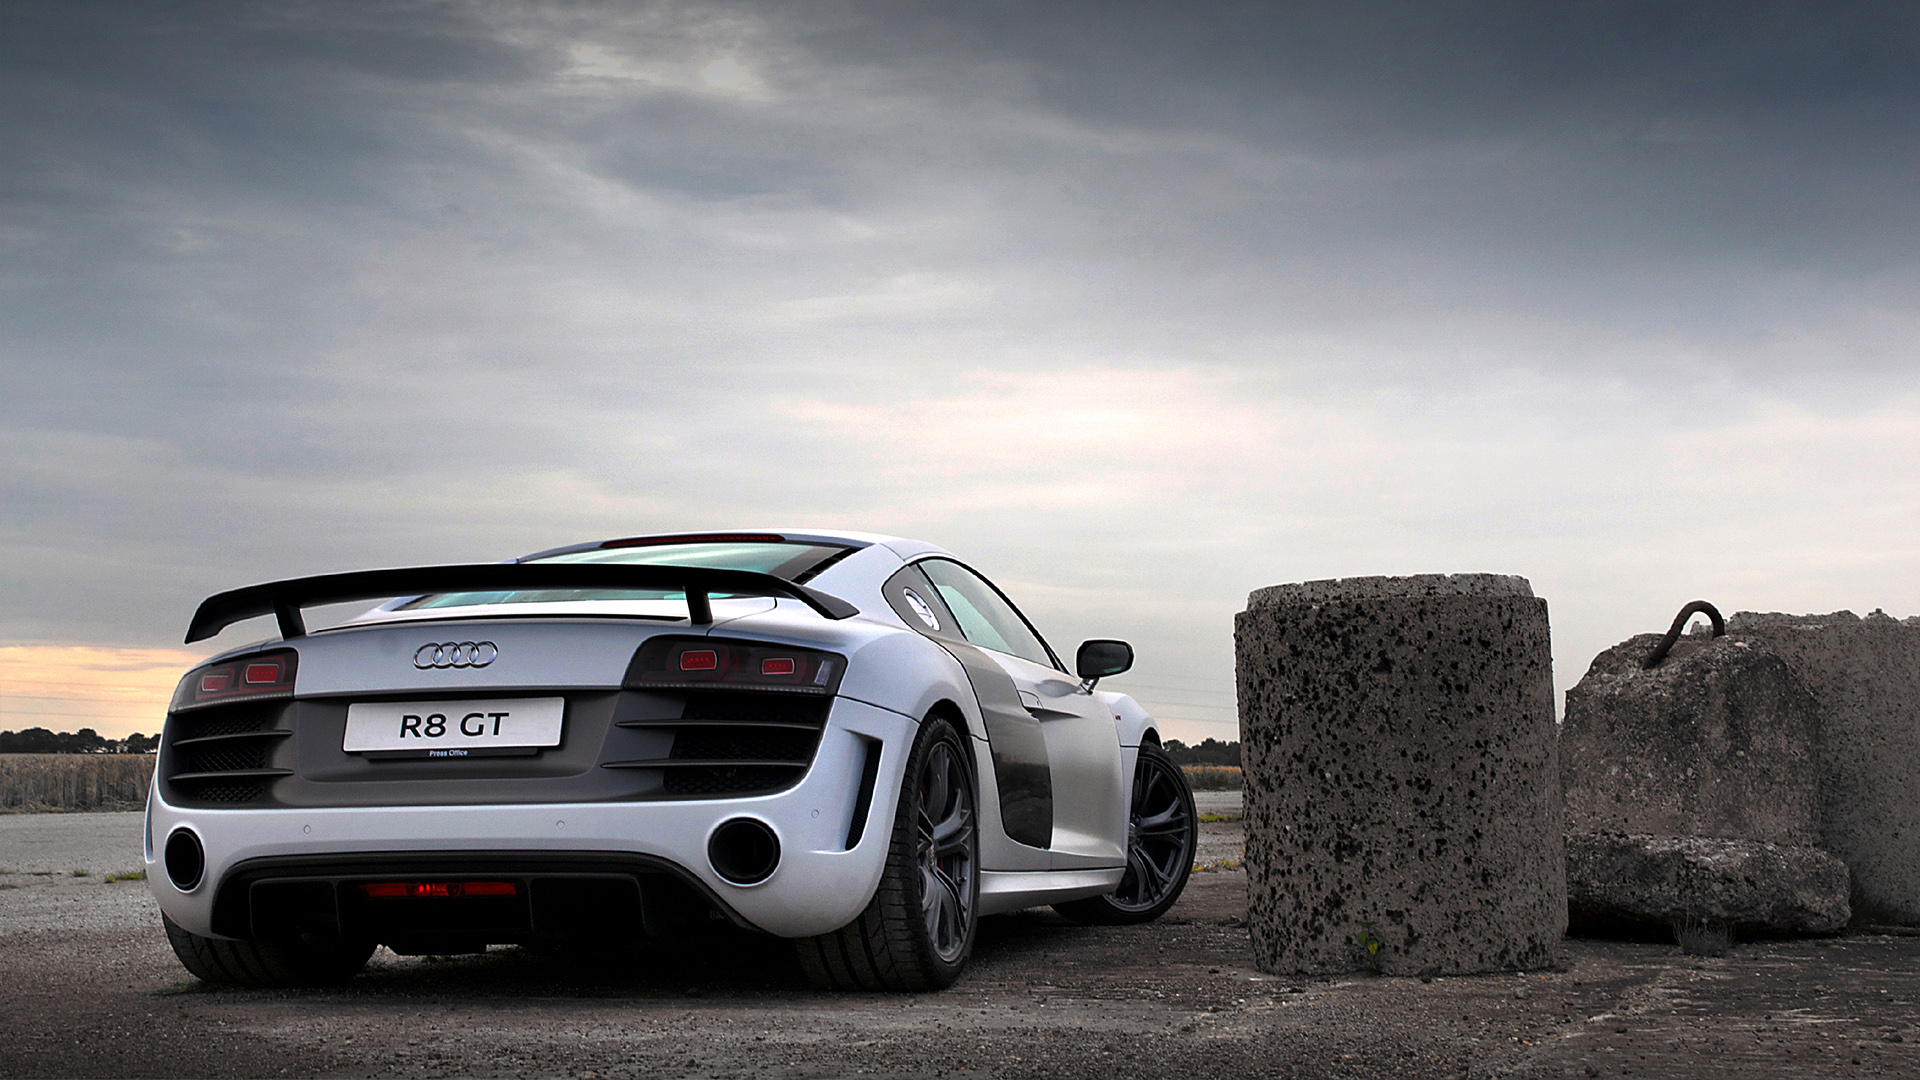 Audi R8 Backgrounds Download   WallpaperAsk 1920x1080